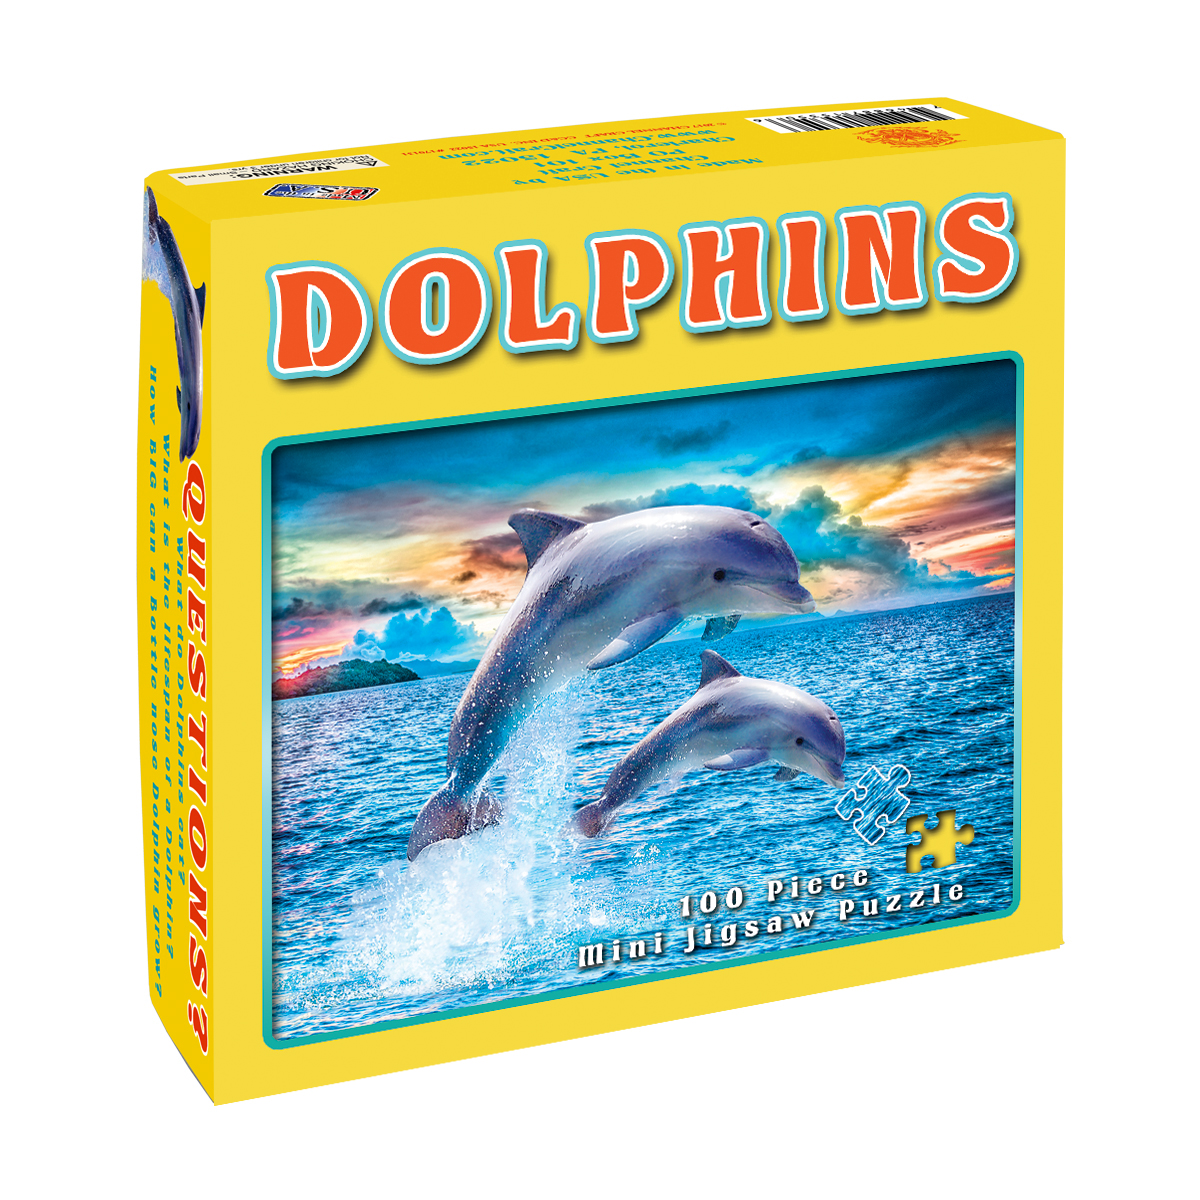 Dolphins (Mini) Dolphins Jigsaw Puzzle